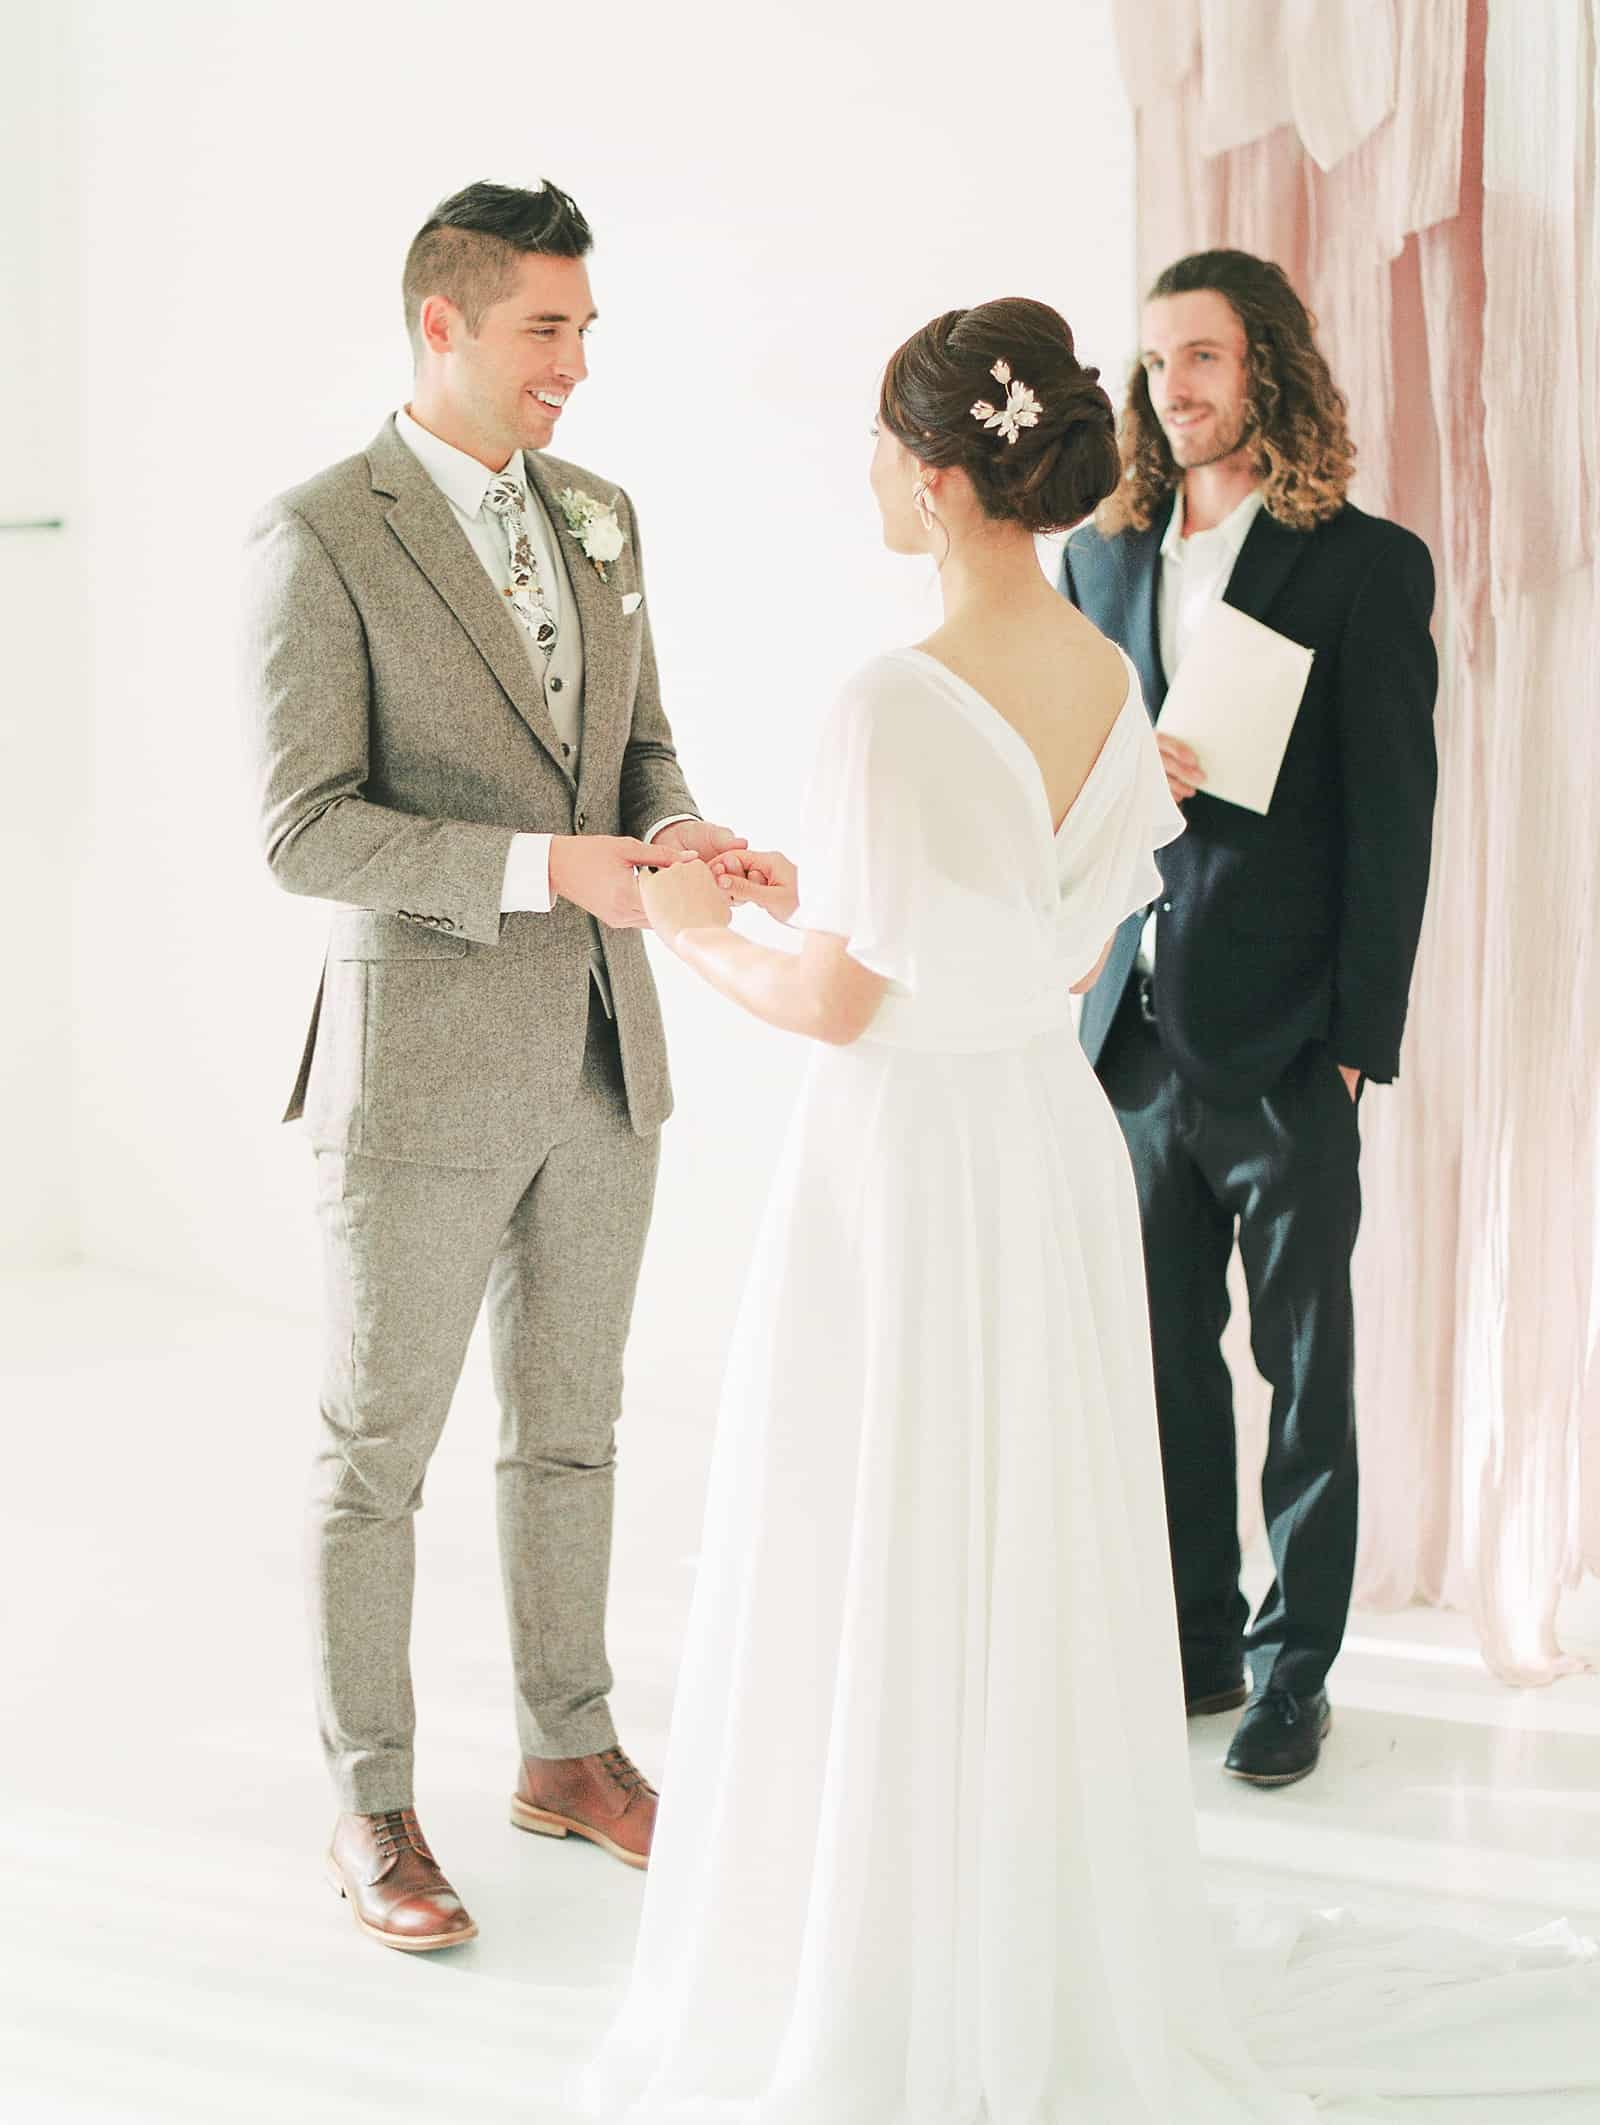 Groom in beige gray suit says his vows and smiles